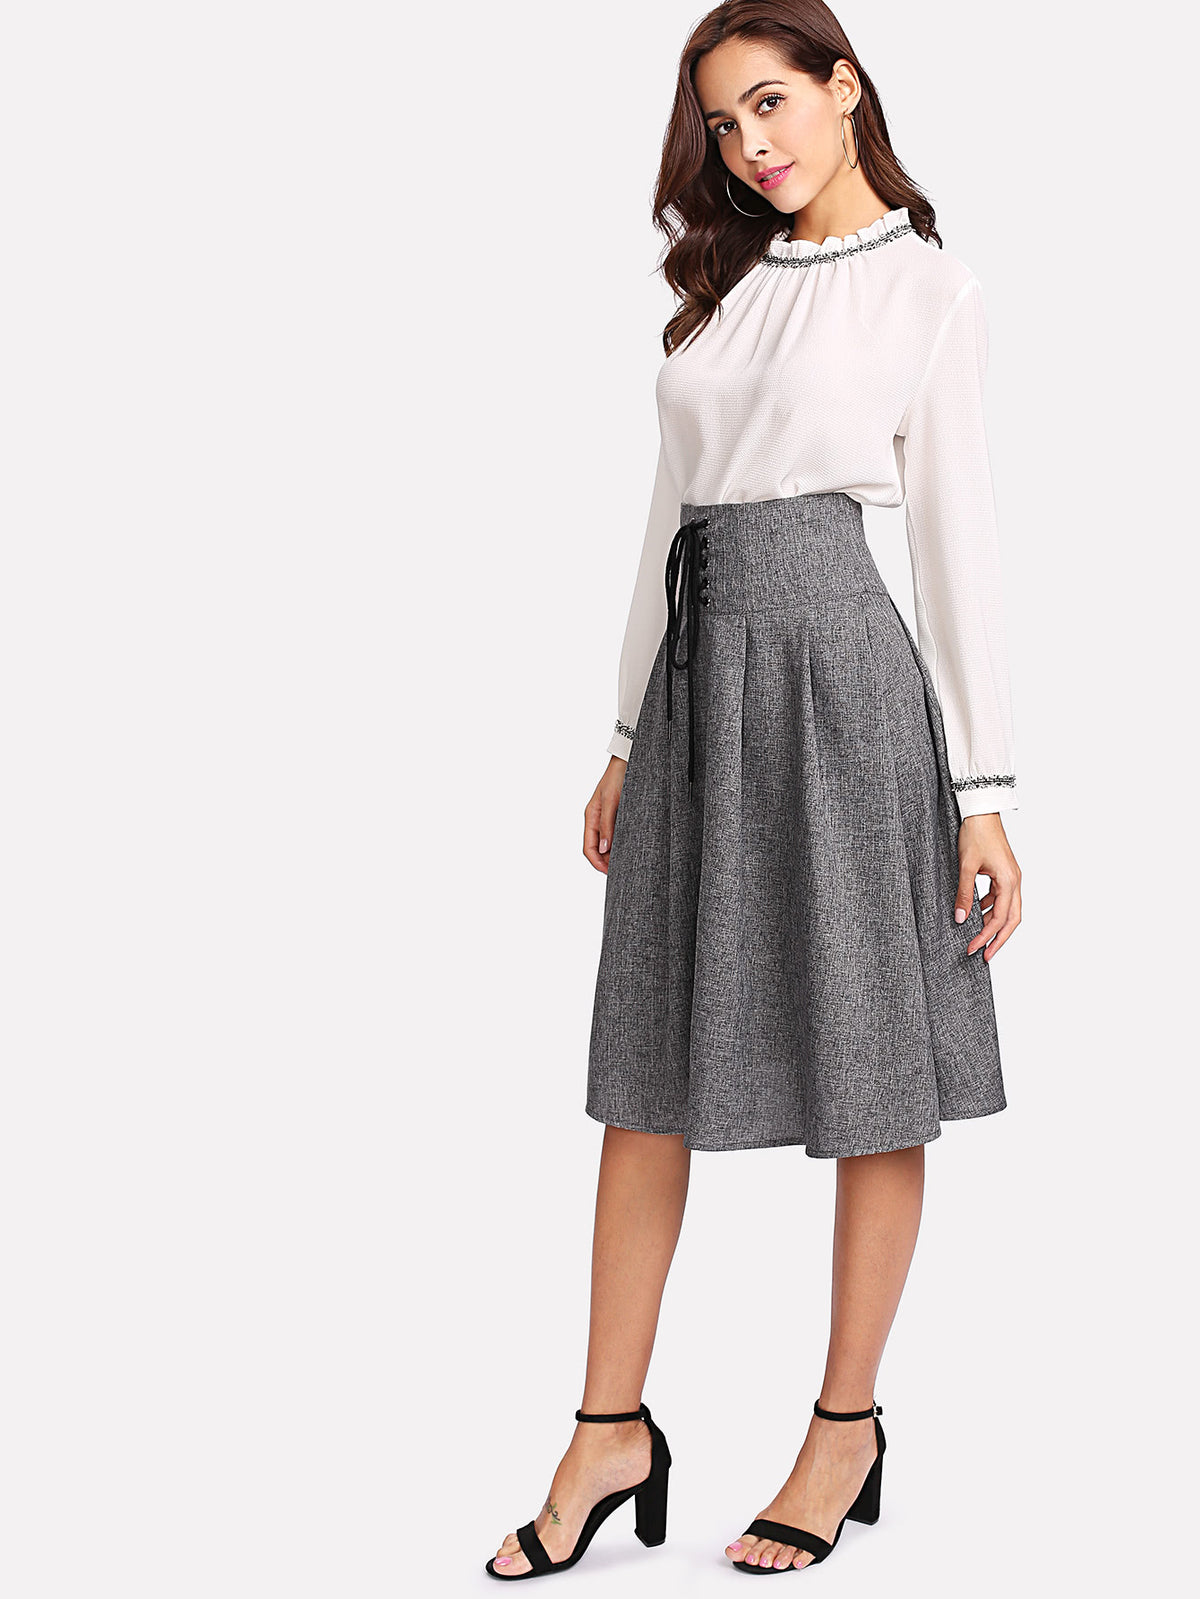 Grommet Lace Up Waist Boxed Pleated Skirt